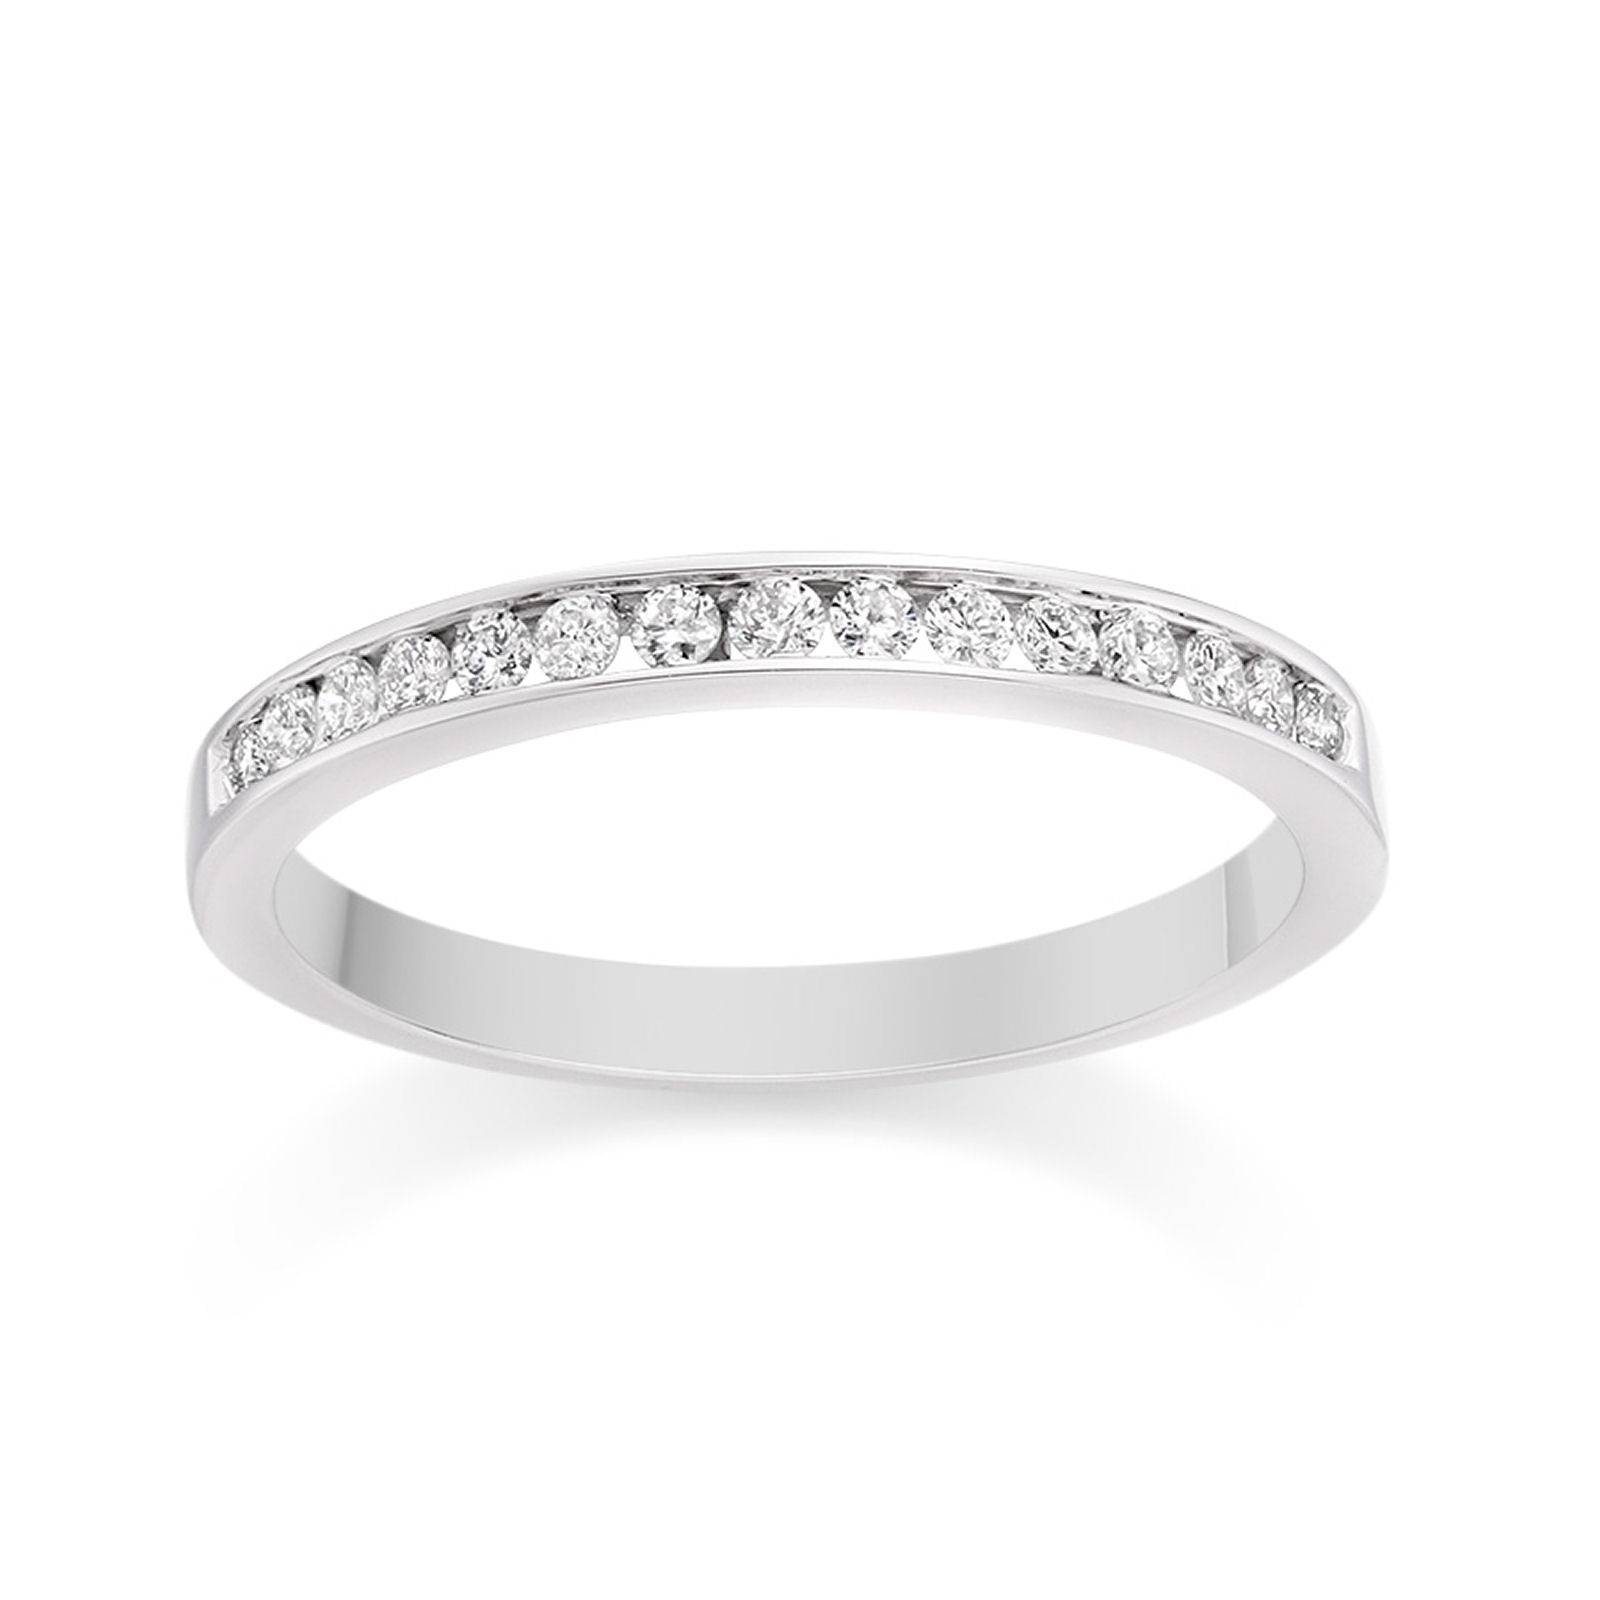 Channel Set Diamond Wedding Ring In Platinum Wedding Dress From Intended For Platinum Diamond Wedding Rings Sets (View 8 of 15)